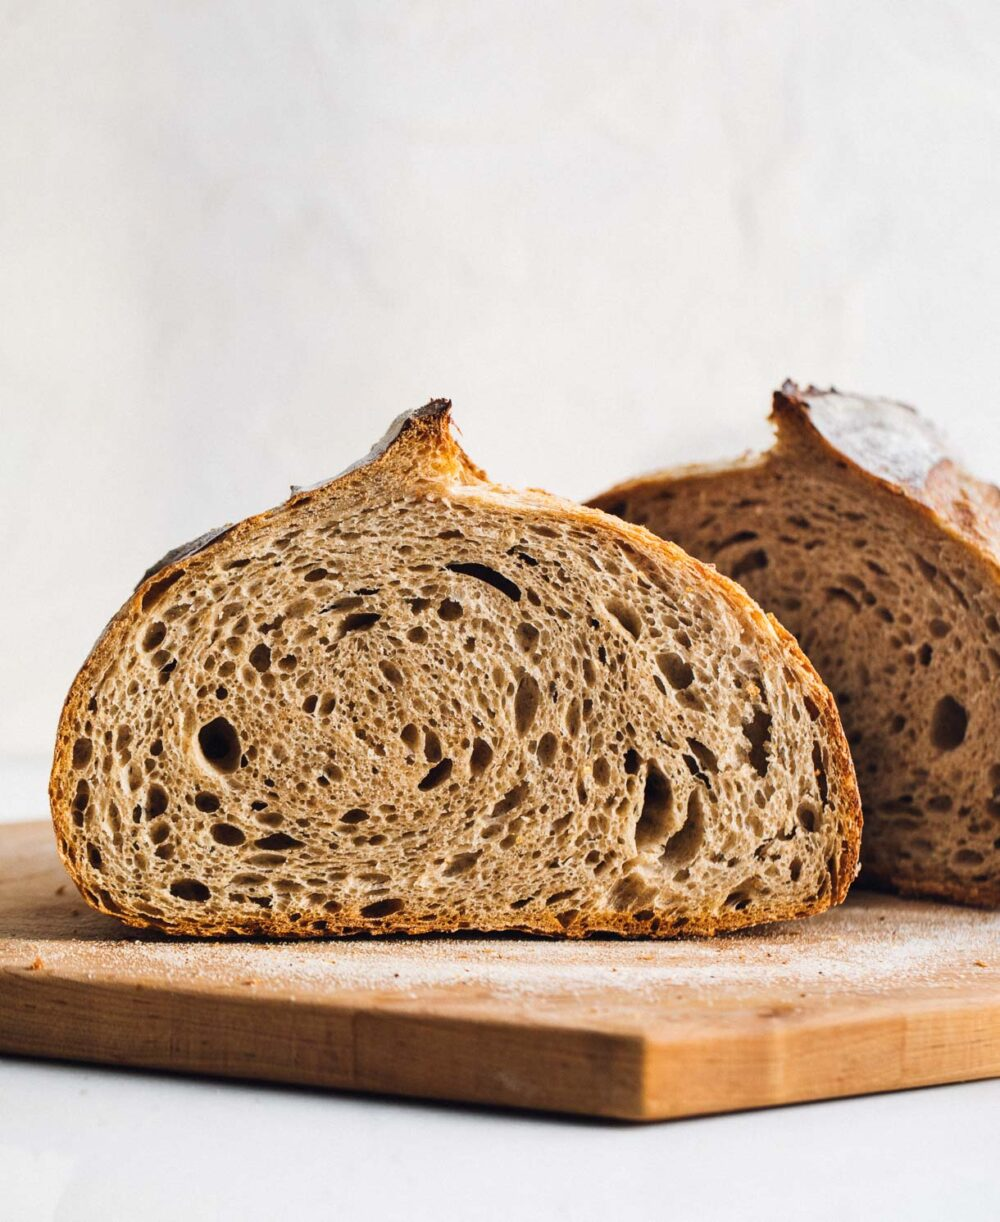 whole wheat sourdough bread, cut in half with crumb showing